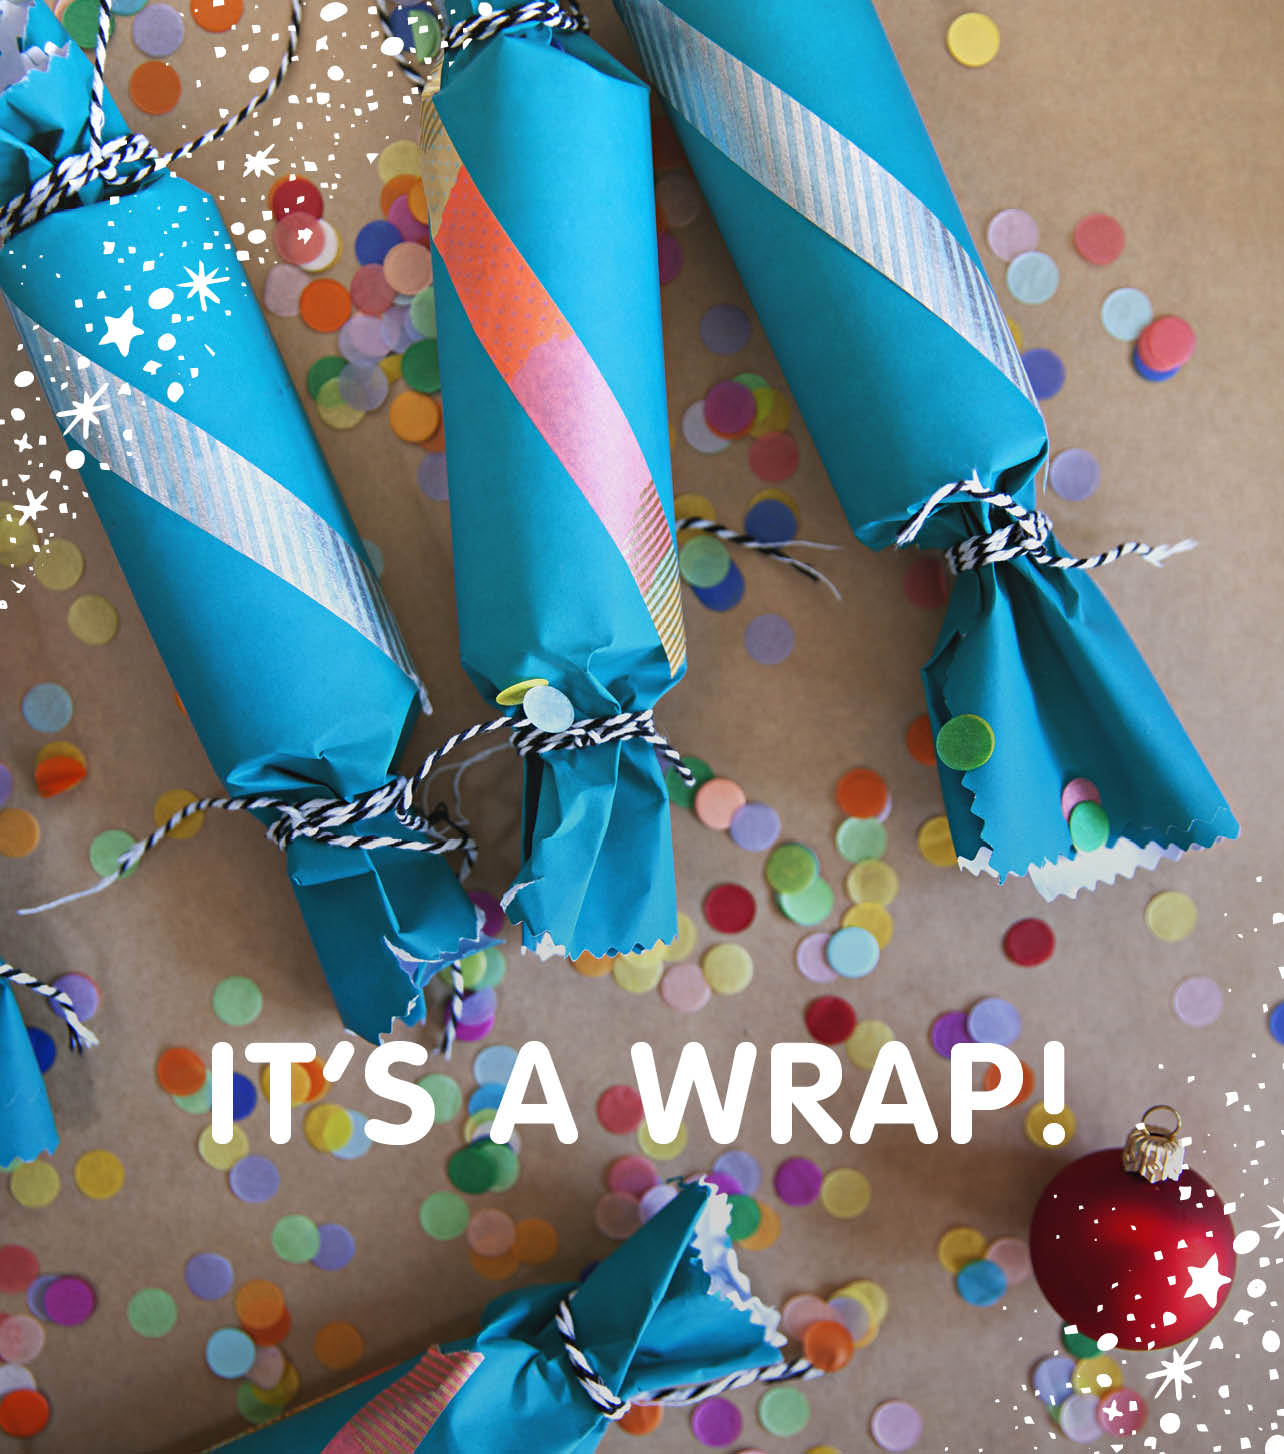 CH4432_Charter Hall Xmas Roll Out_Webtiles_Wrapping-NewWebsite_@2-642x727